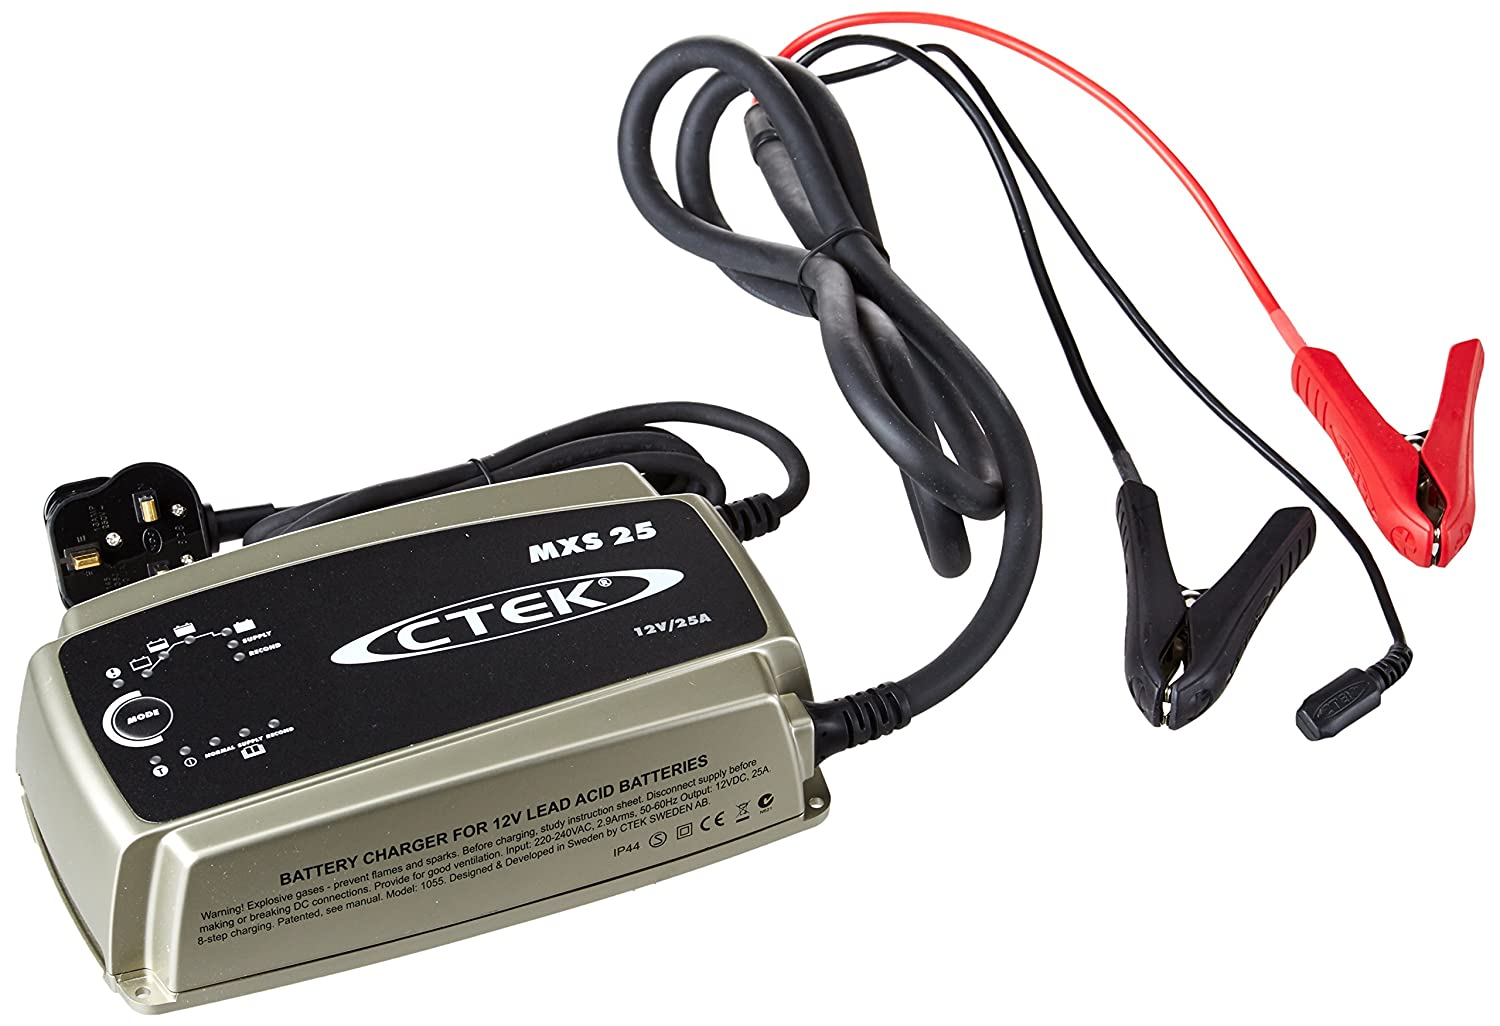 Ctek Mxs 25 25a 12v 8 Stage Car Battery Charger Diy Related Circuits Lead Acid Circuit Tools